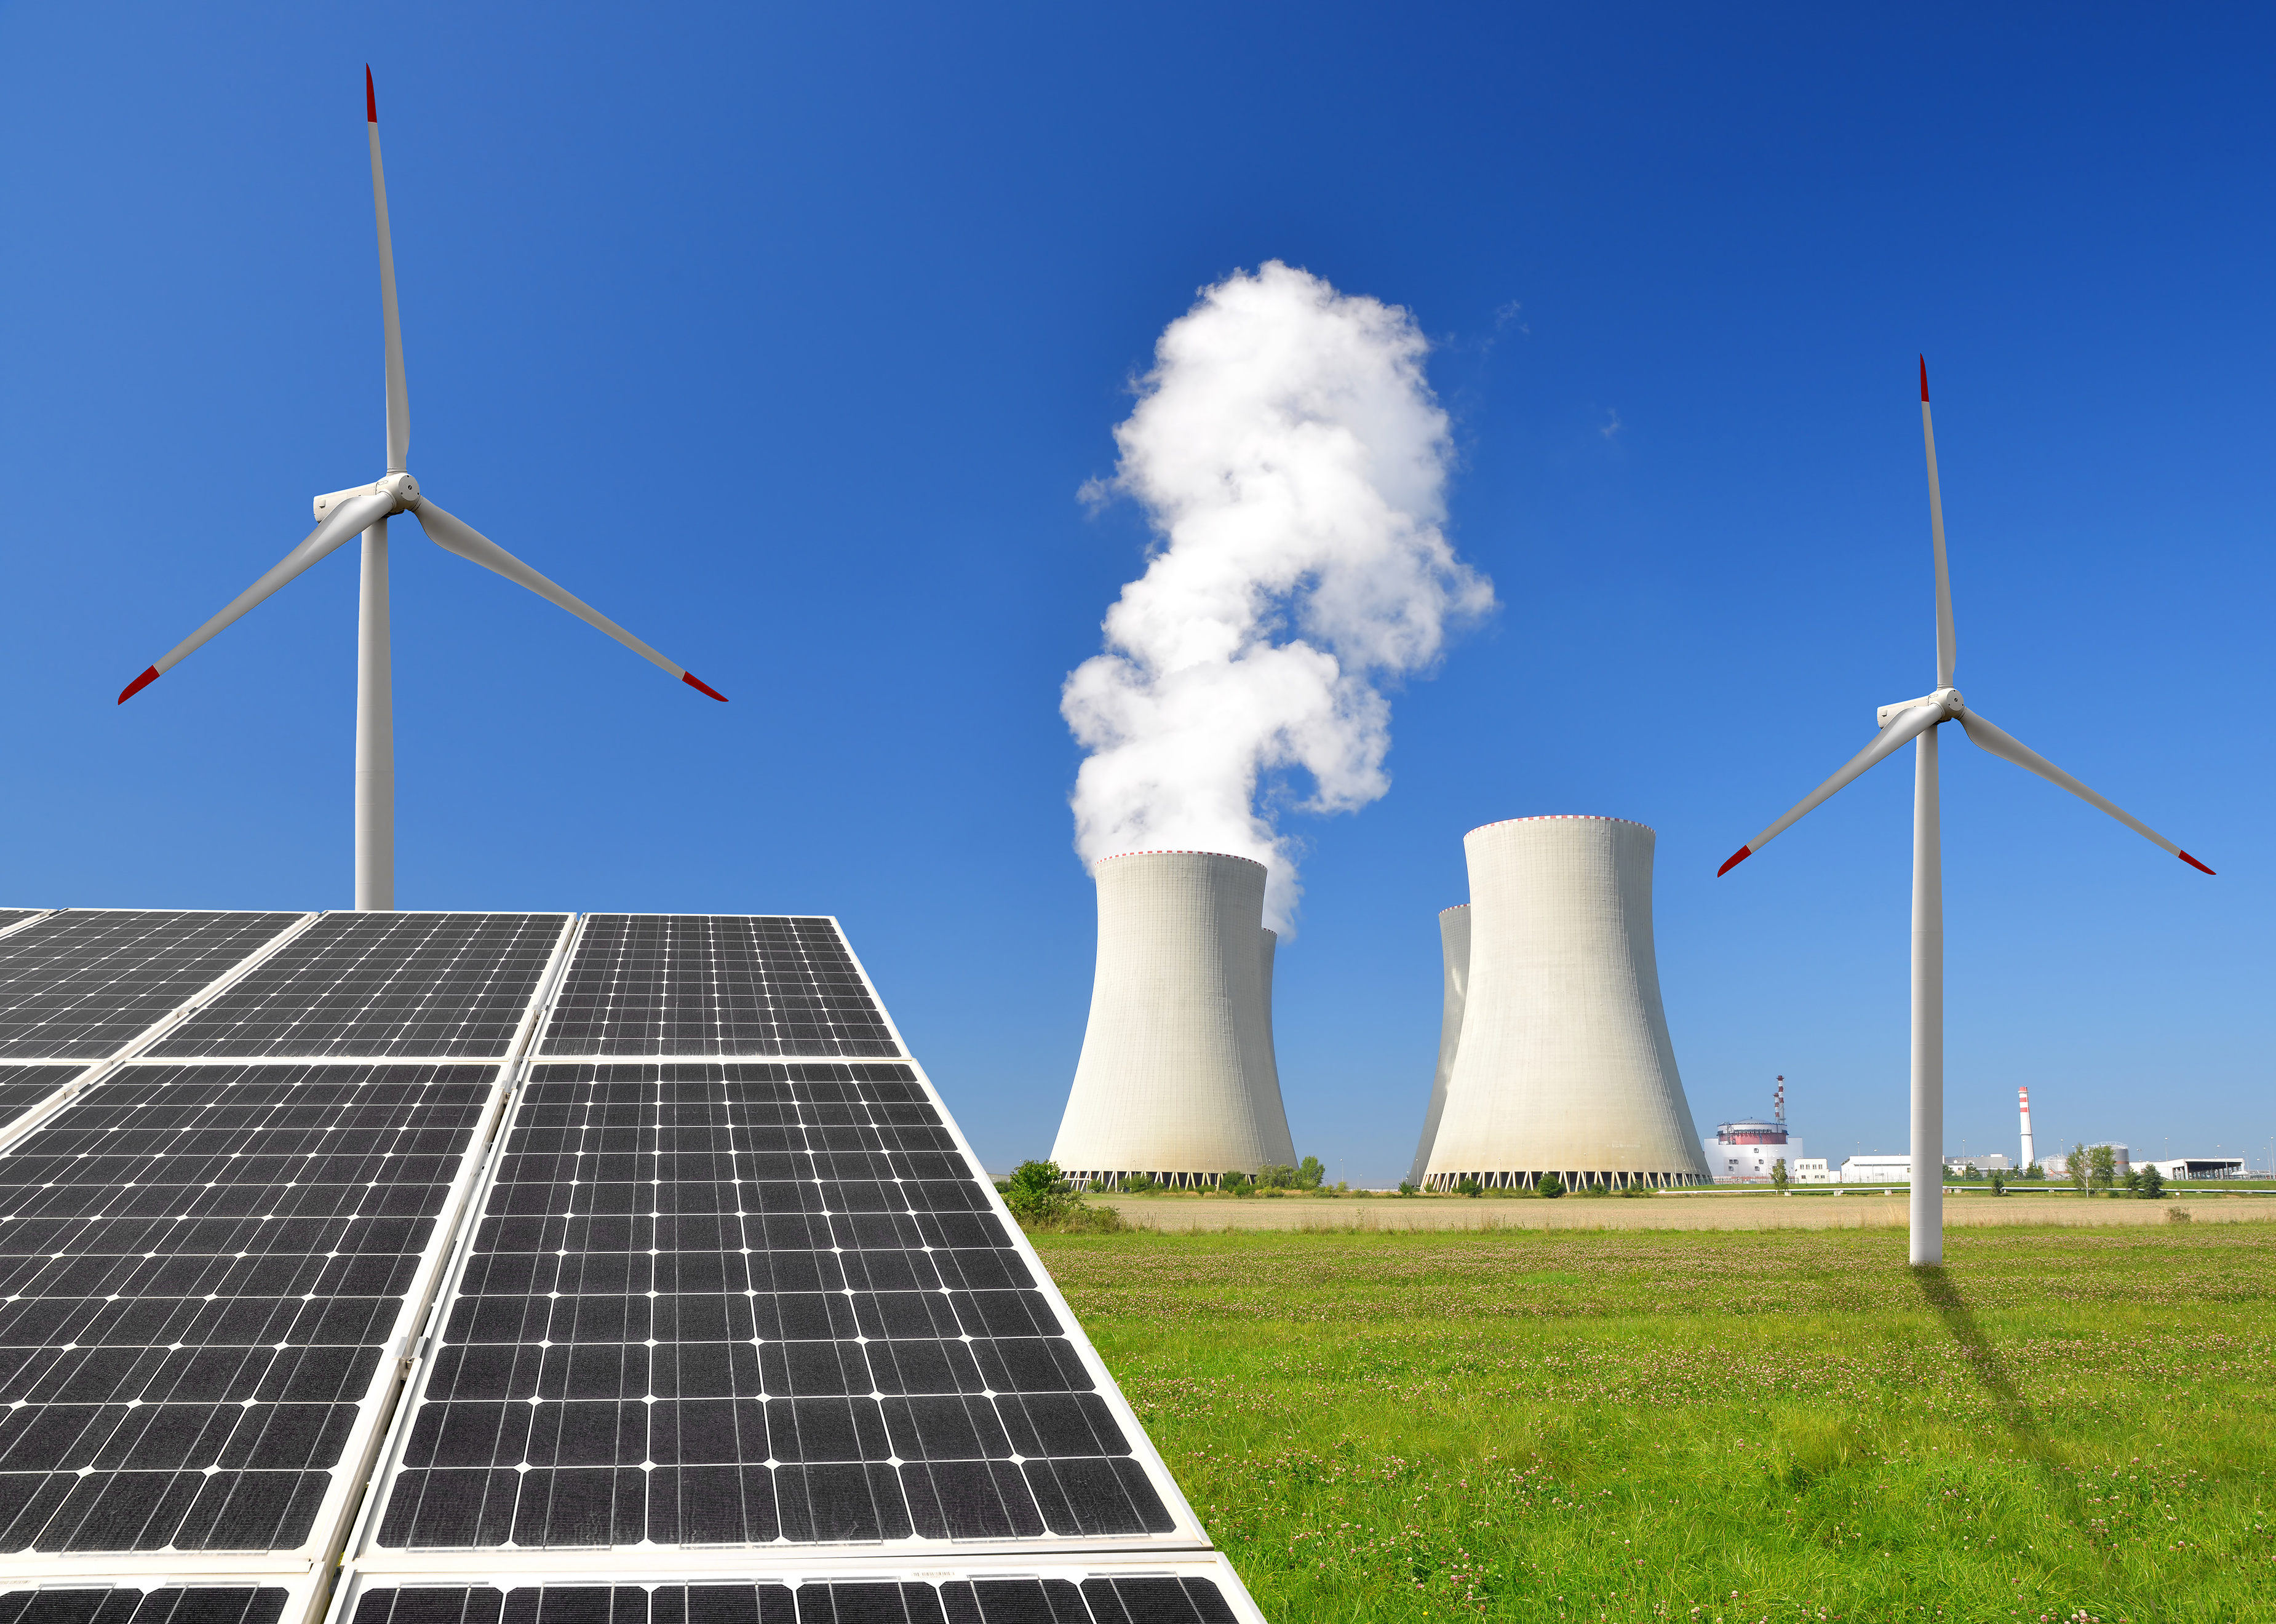 solar panel, wind turbines and nuclear power plant